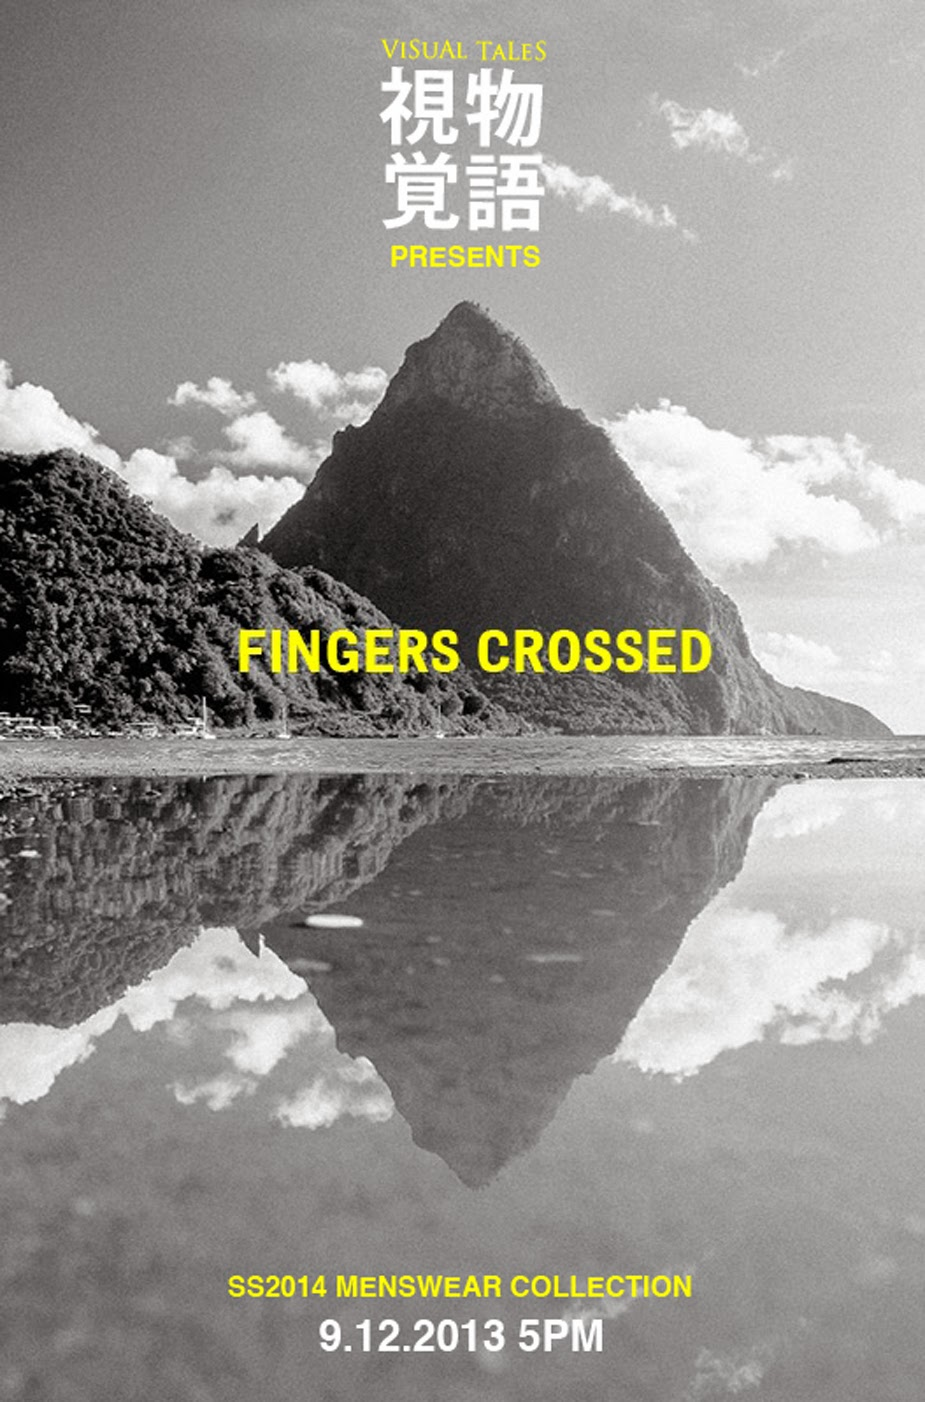 JTC|VISUAL TALES RECOMMENDS: FINGERS CROSSED